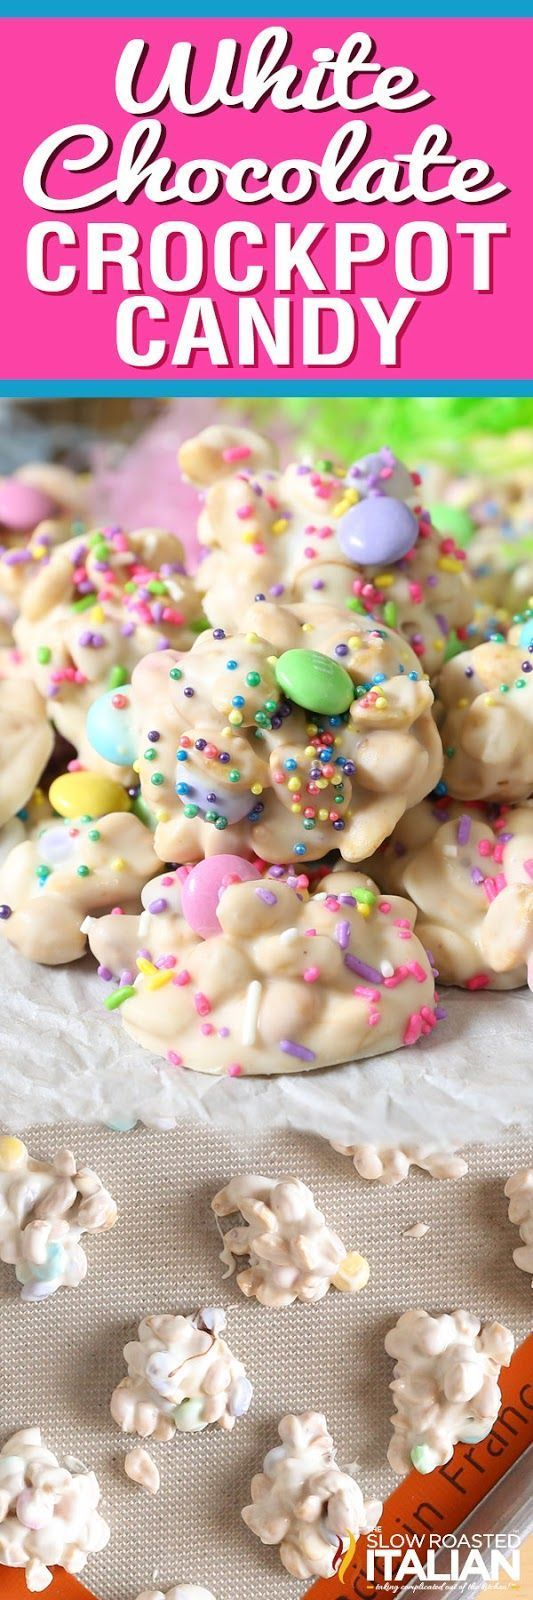 White Chocolate Easter Crockpot Candy Clusters are a simple, impressive 3-ingredient homemade Easter candy that everyone will be raving about! An easy recipe that you layer in the slow cooker, stir and scoop. It is so easy it almost makes itself.